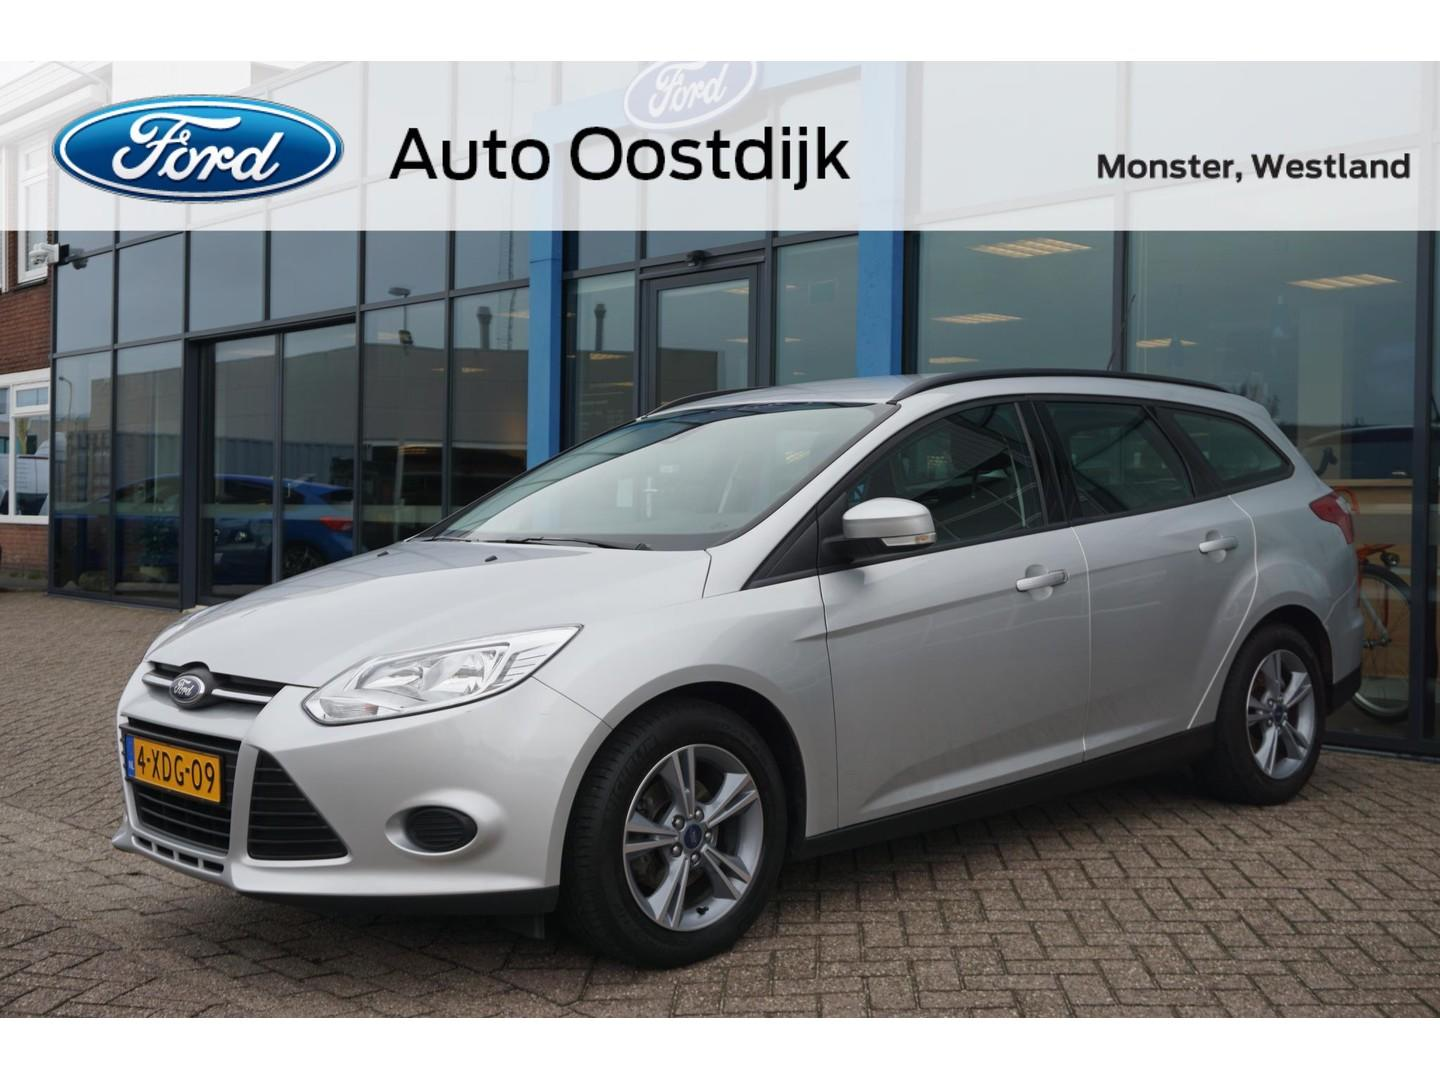 Ford Focus Wagon 1.0 ecoboost trend edition 100pk navi cruisecontrol airco isofix dealer onderhouden